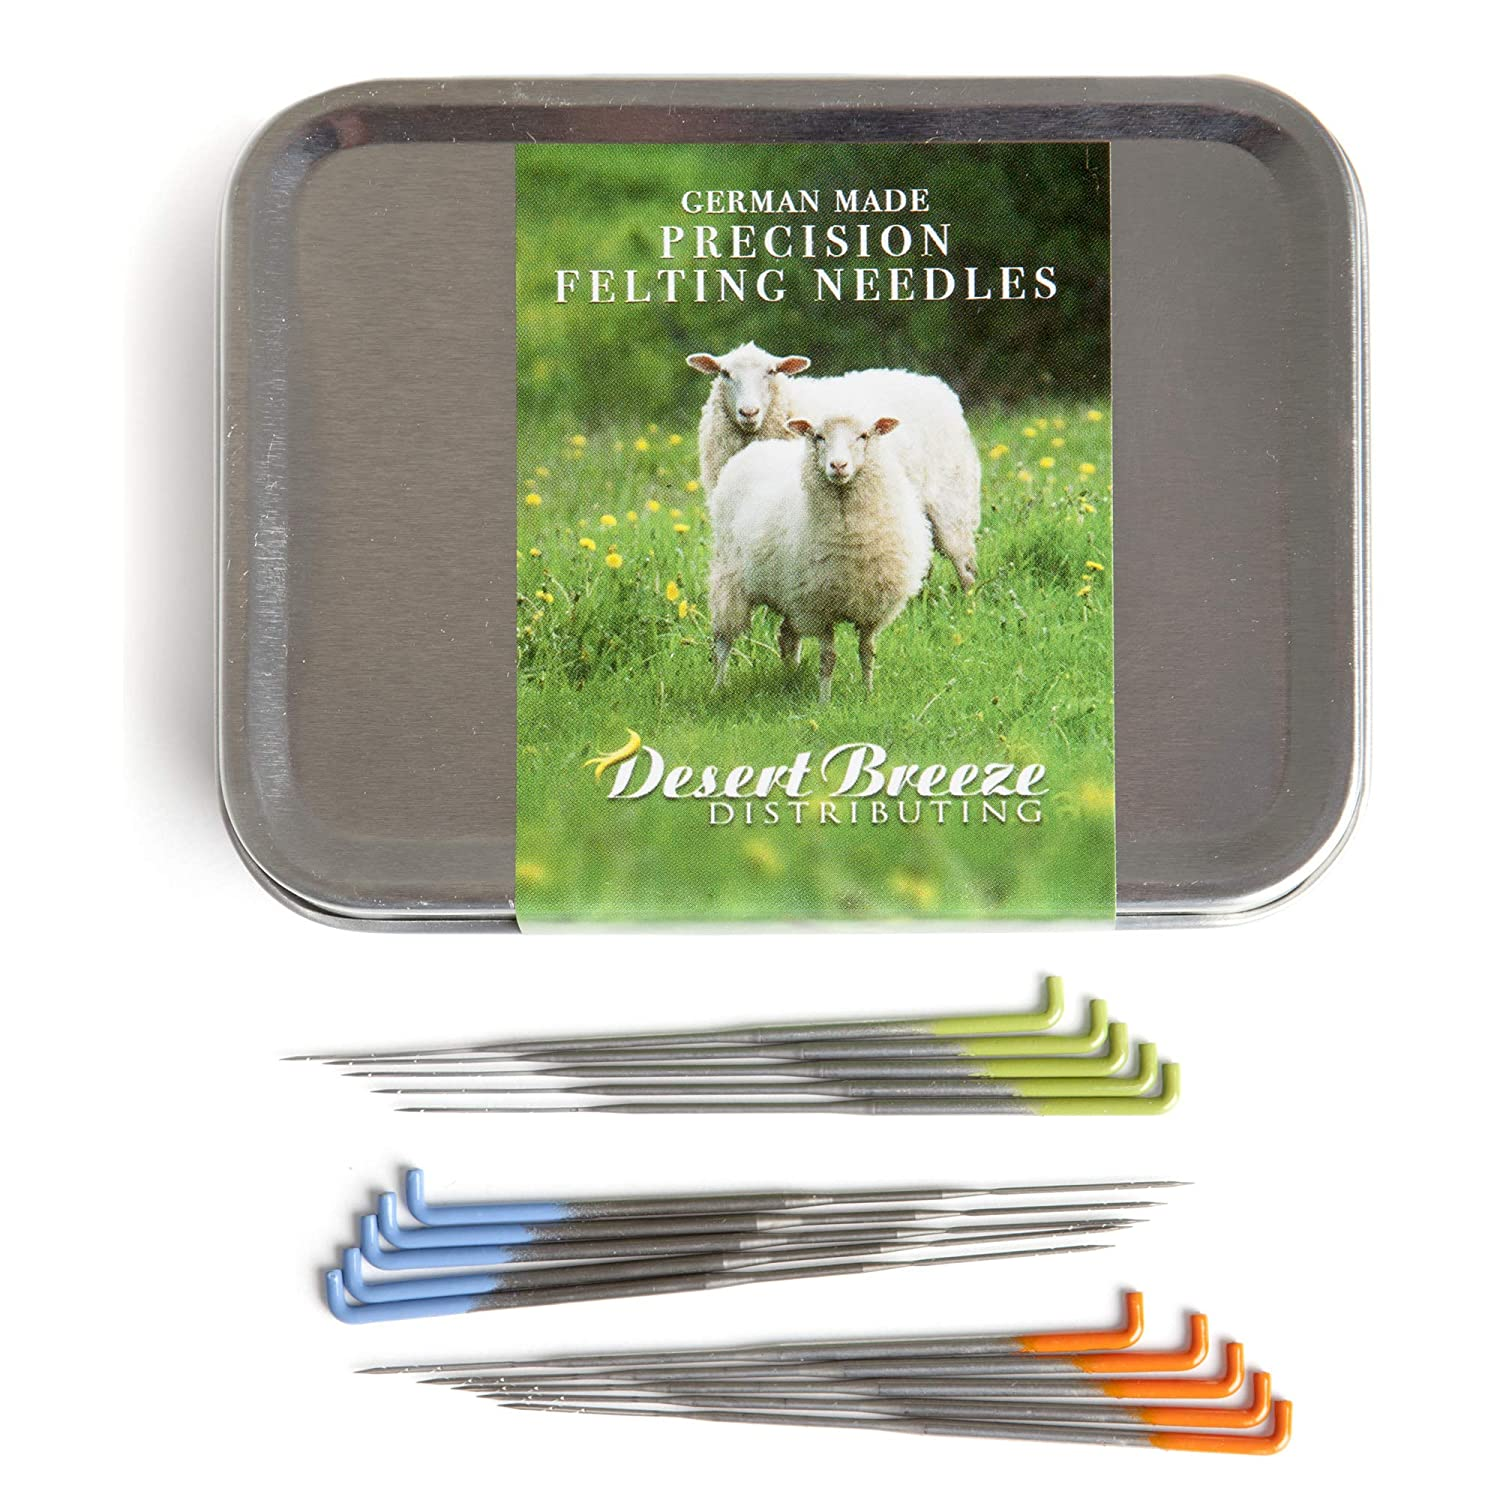 Precision Felting Needles, High Carbon Steel, Color Coded, 36 Gauge Star, 38 Gauge Star, 40 Spiral/Twist, Made by Groz-Beckert of Germany 81SF9UB604L